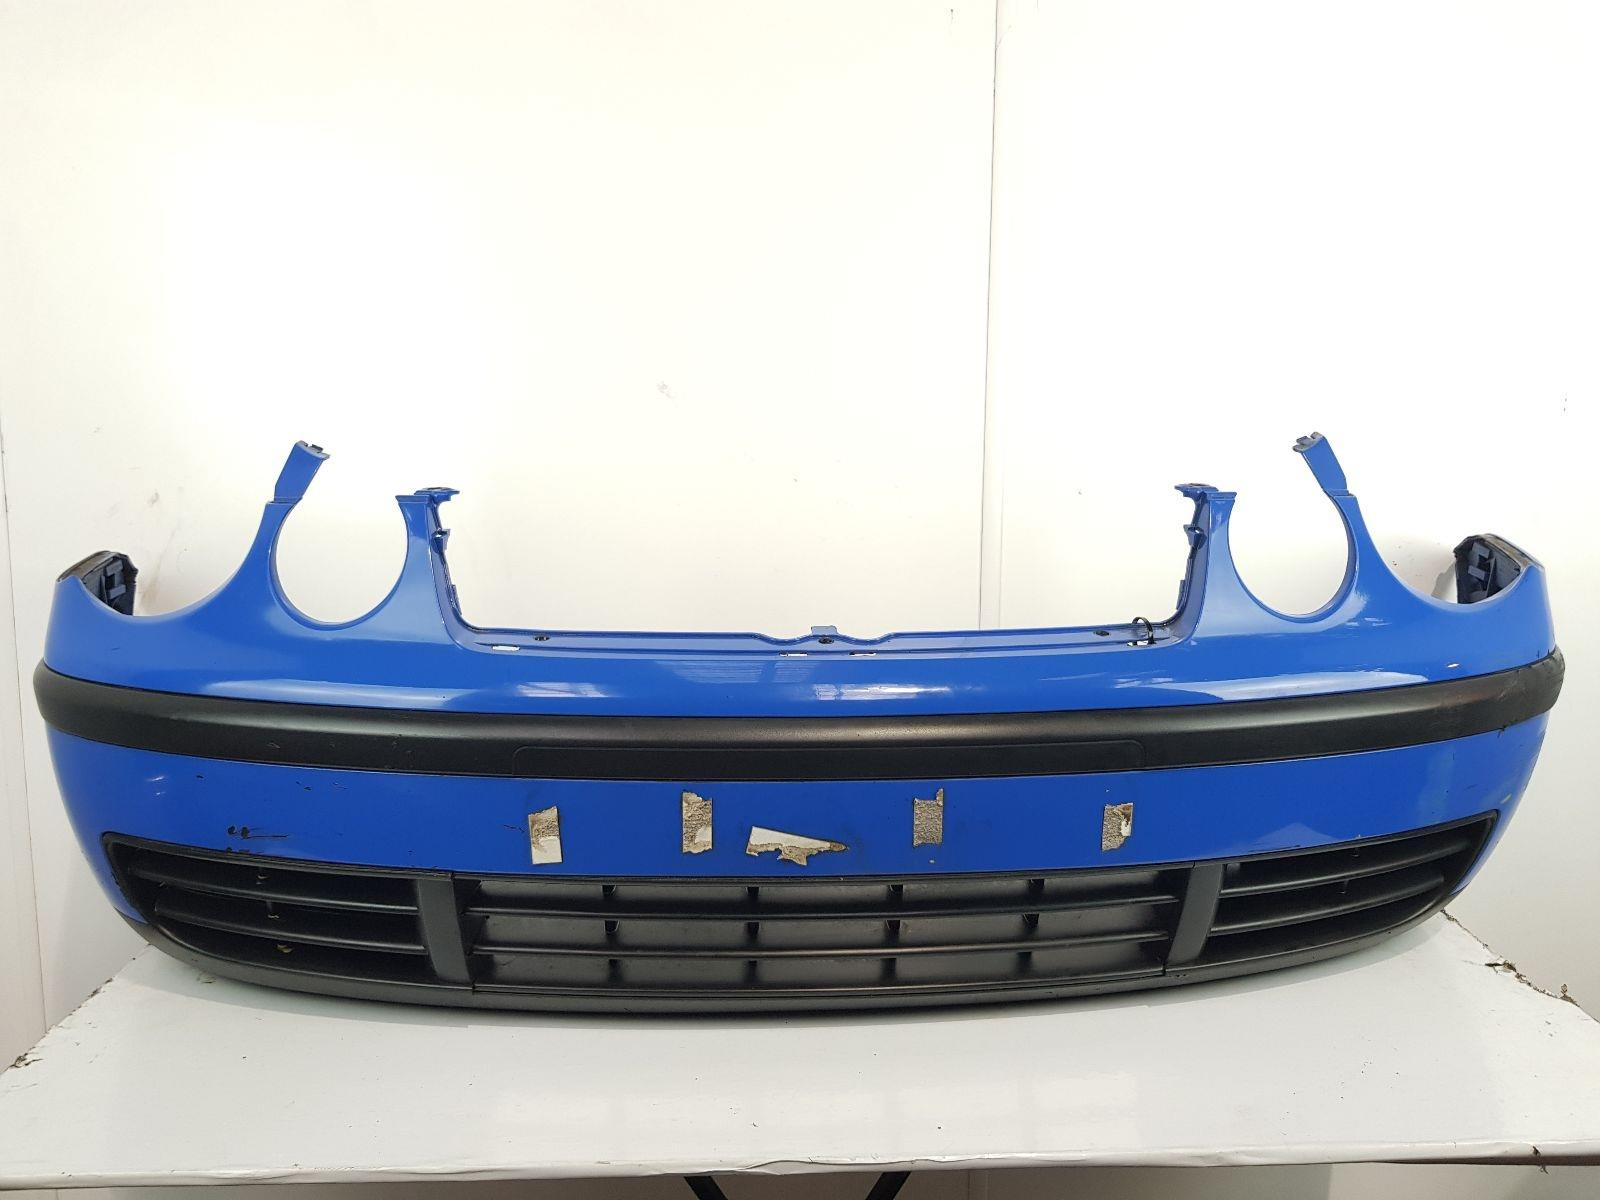 Volkswagen Polo 2002 To 2005 Bumper Front Petrol Manual